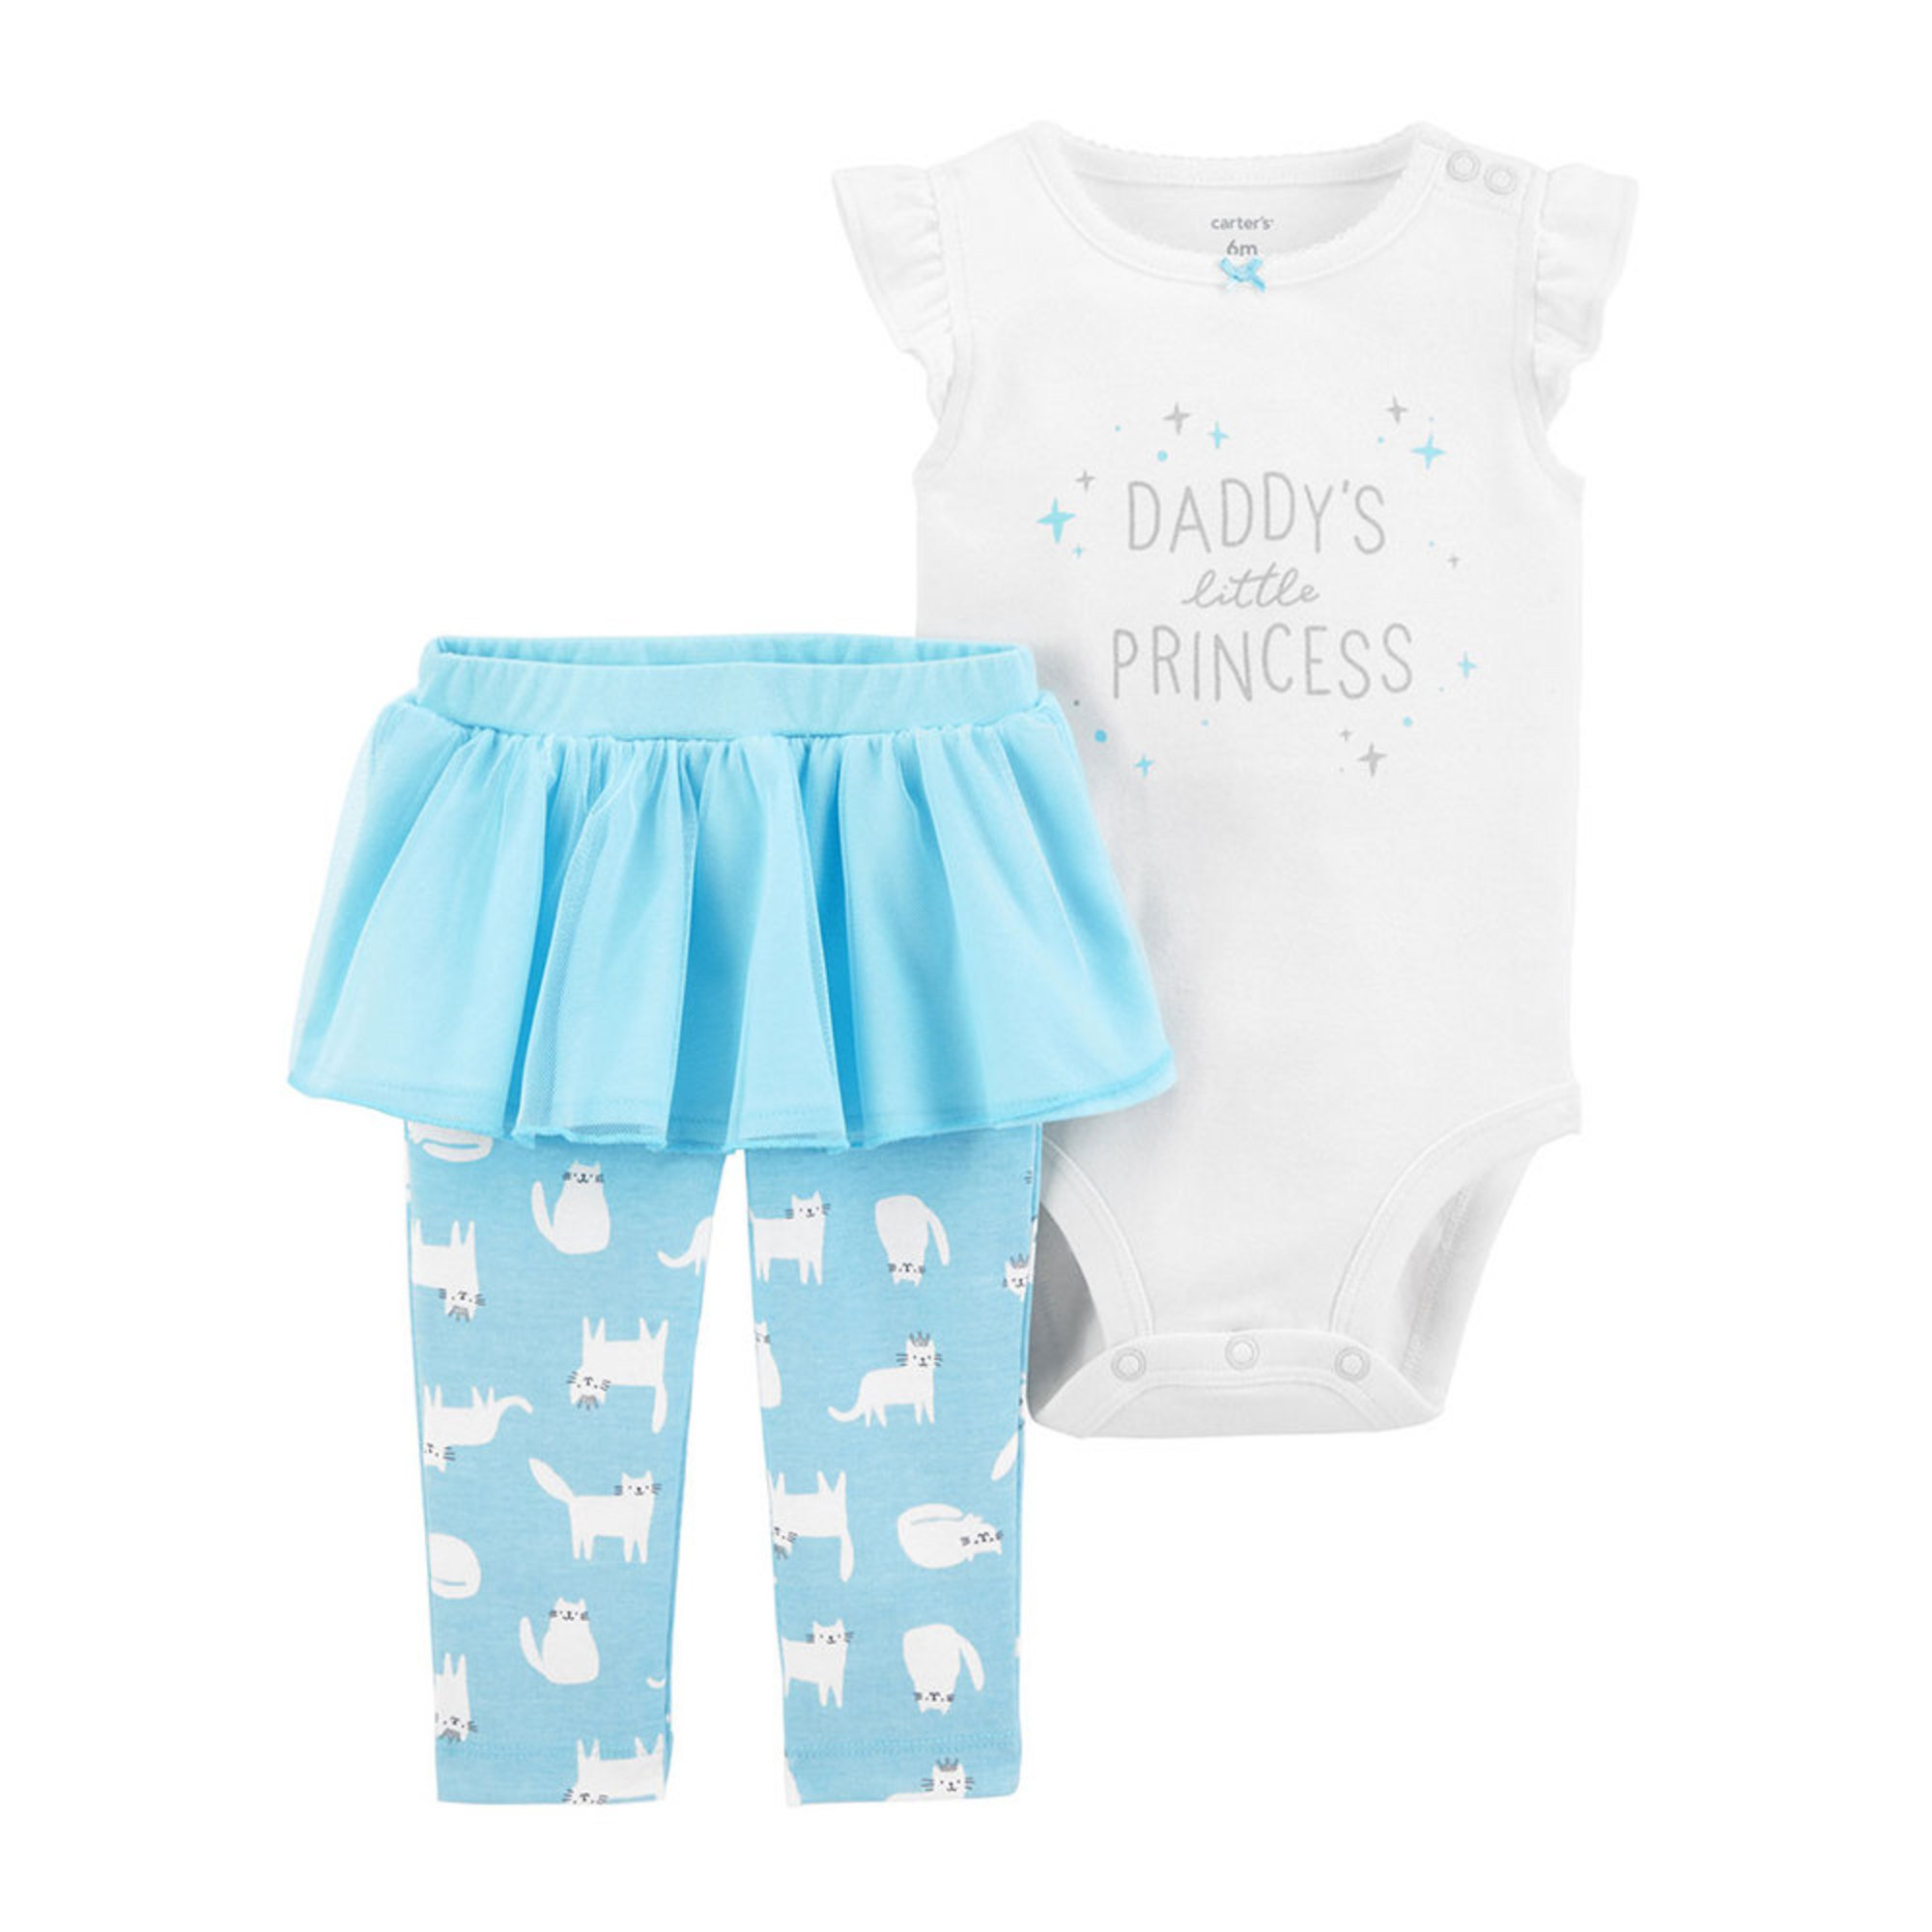 0a63a8f0783 Carter's Baby Girls' Bodysuit and Pant Set